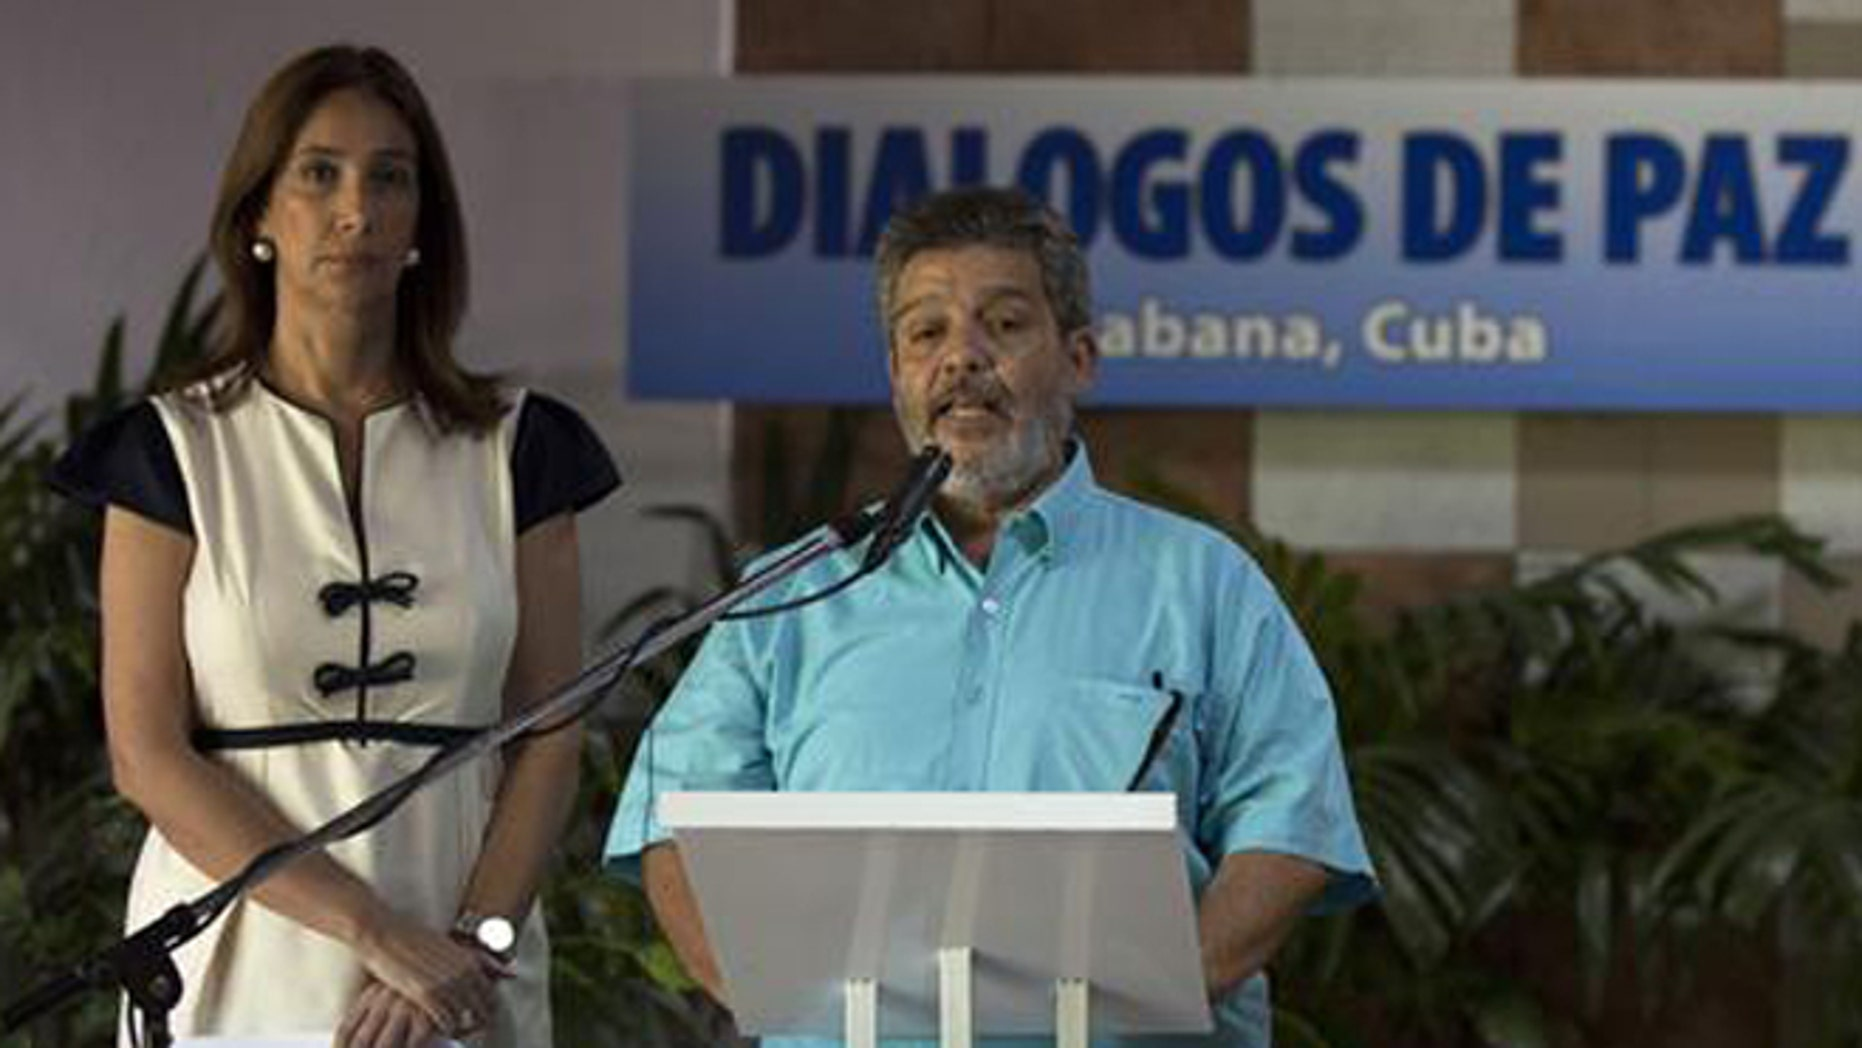 Accompanied by Marcela Duran, left, the Colombian government delegation's head of press, Marco Leon Calarca, member of the Revolutionary Armed Forces of Colombia, or FARC, speaks during the announcement of a deal on bilateral cease-fire that would be the last major step toward ending one of the world's longest wars, in Havana, Cuba, Wednesday, June 22, 2016. (Cubadebate via AP)